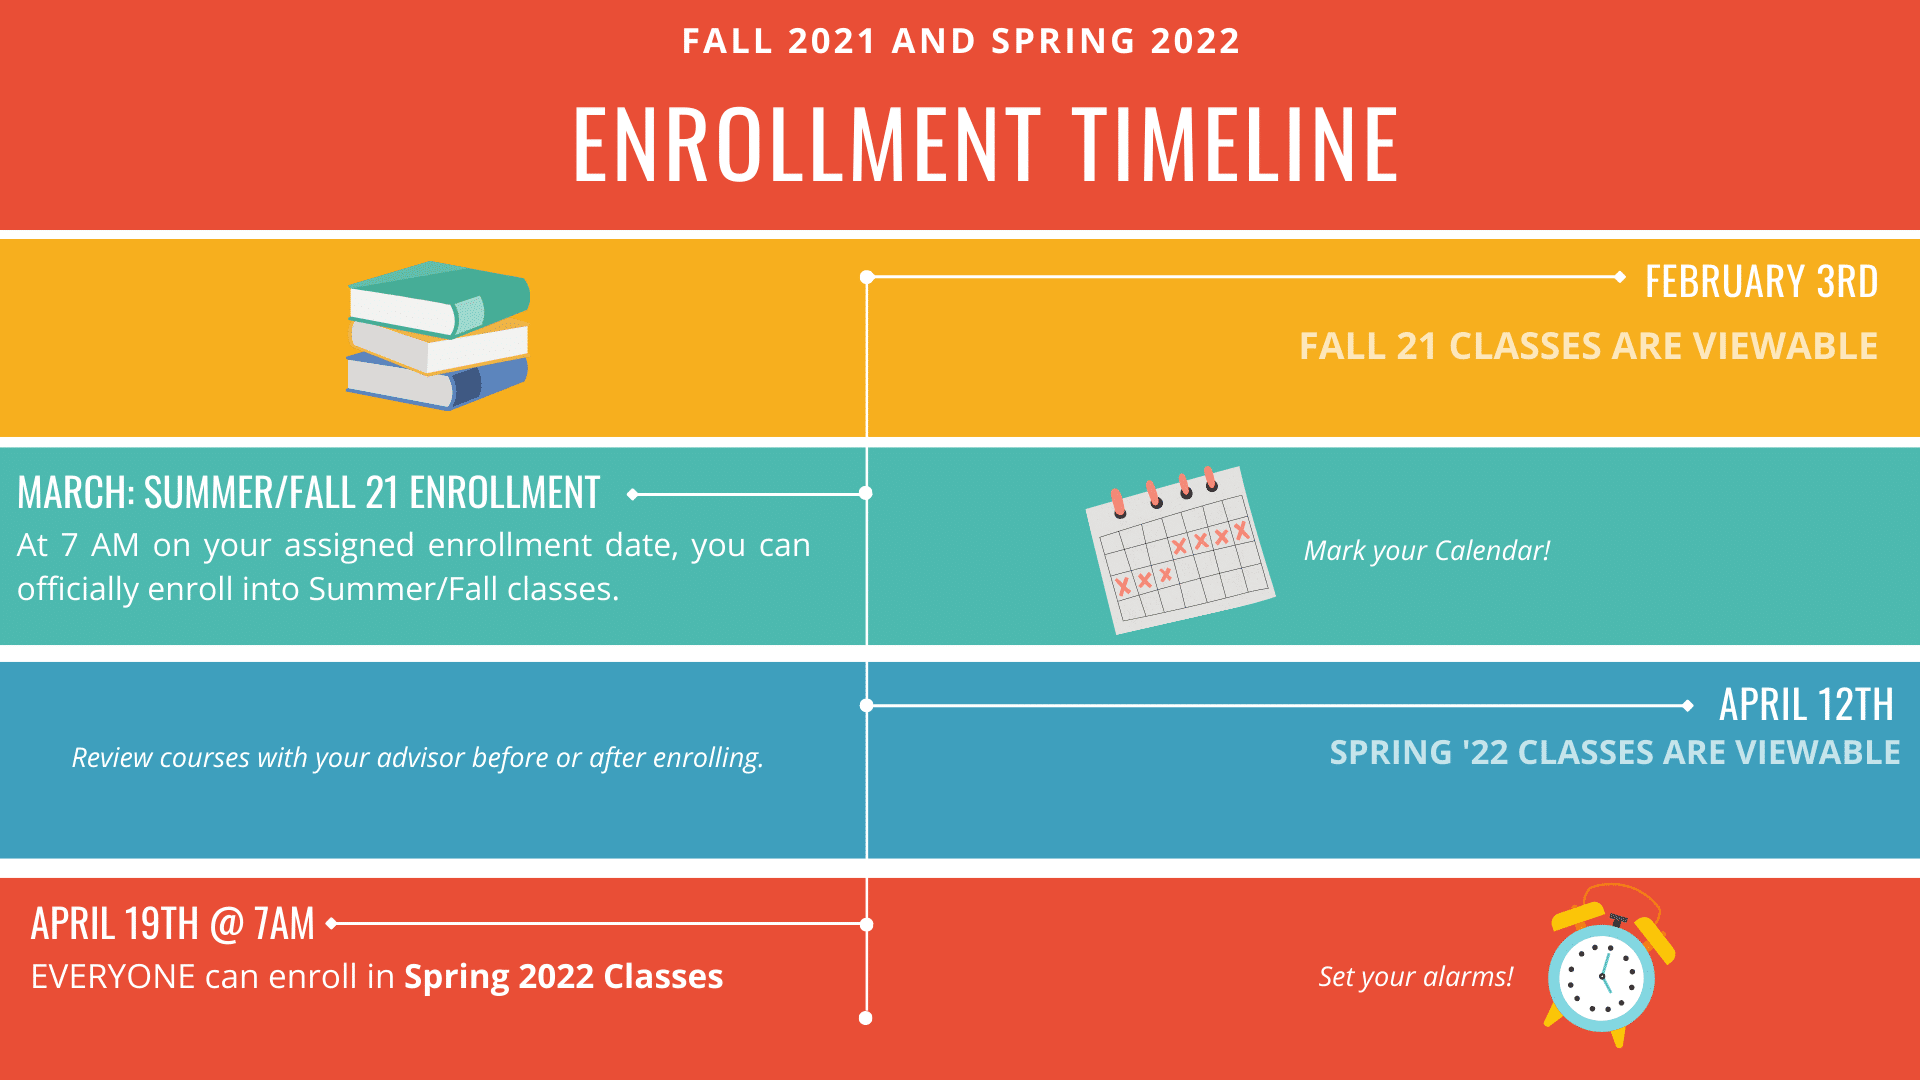 Review courses with your advisor before or after enrolling. Email your advisor or Schedule an Appointment (2)